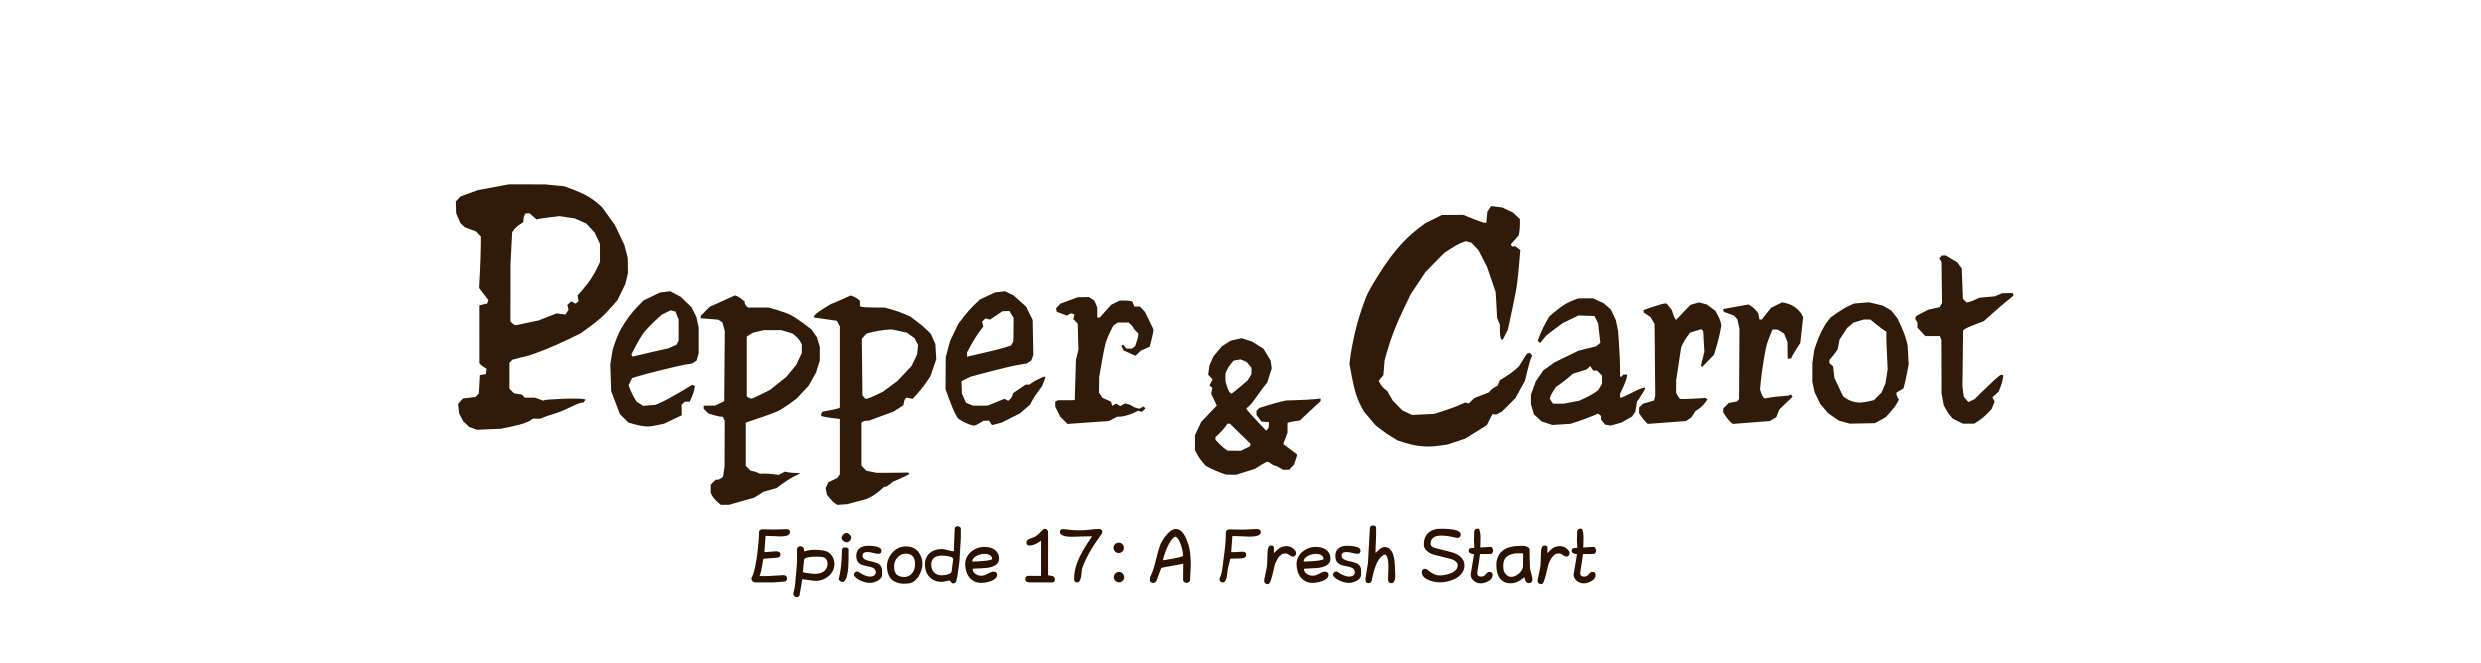 Episode 17: A Fresh Start